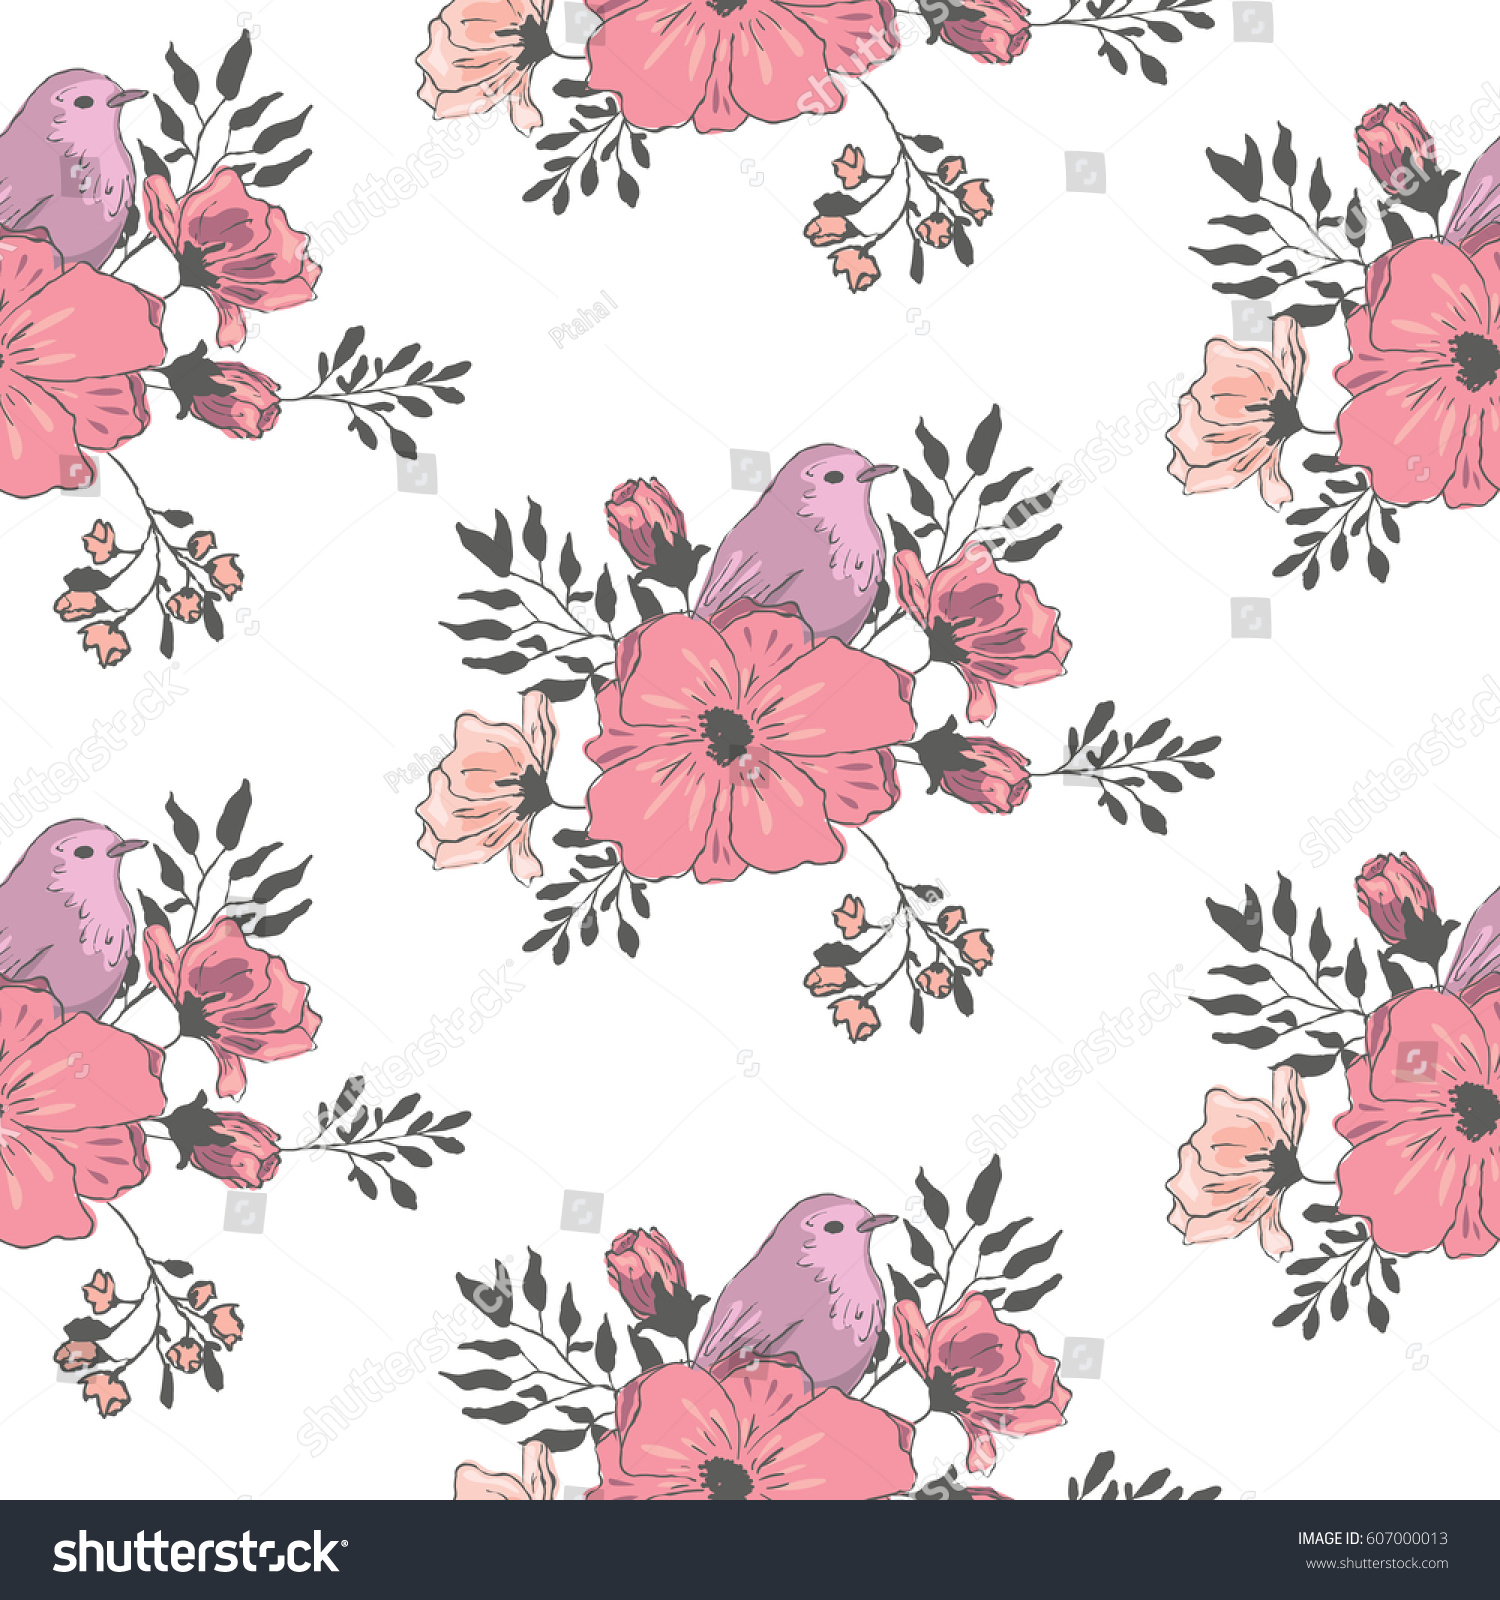 Purple Small Bird With Flowers Wallpaper Seamless Flower Pattern